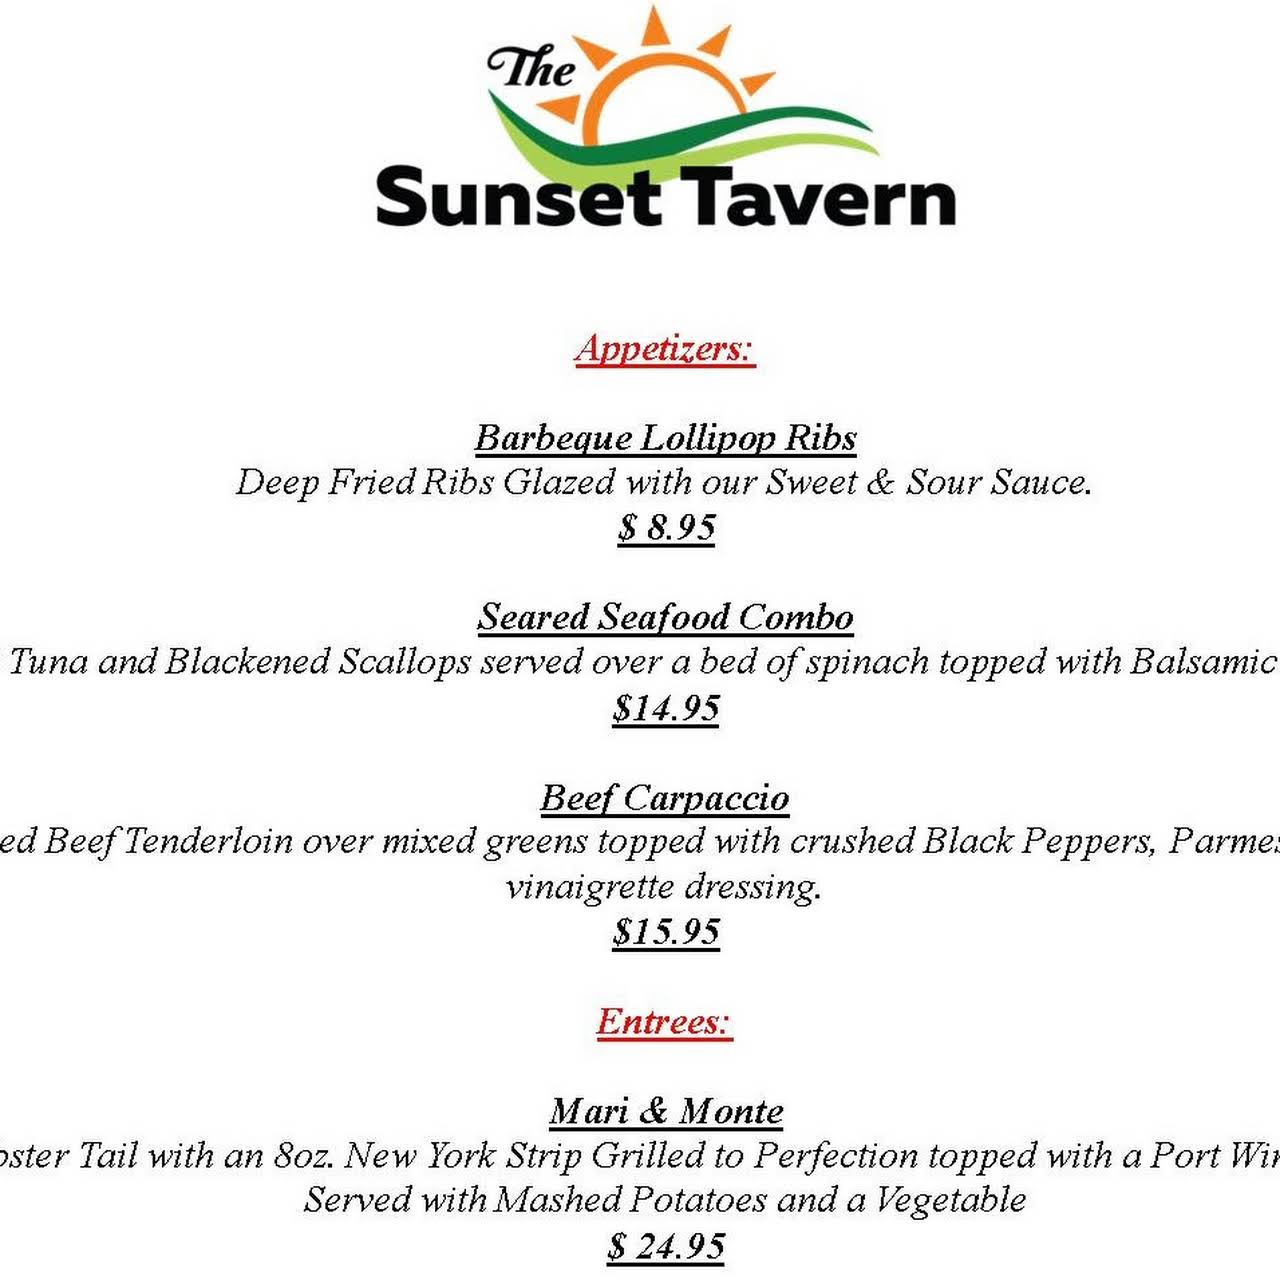 The Sunset Tavern - Family Restaurant & Bar in Suffield, CT